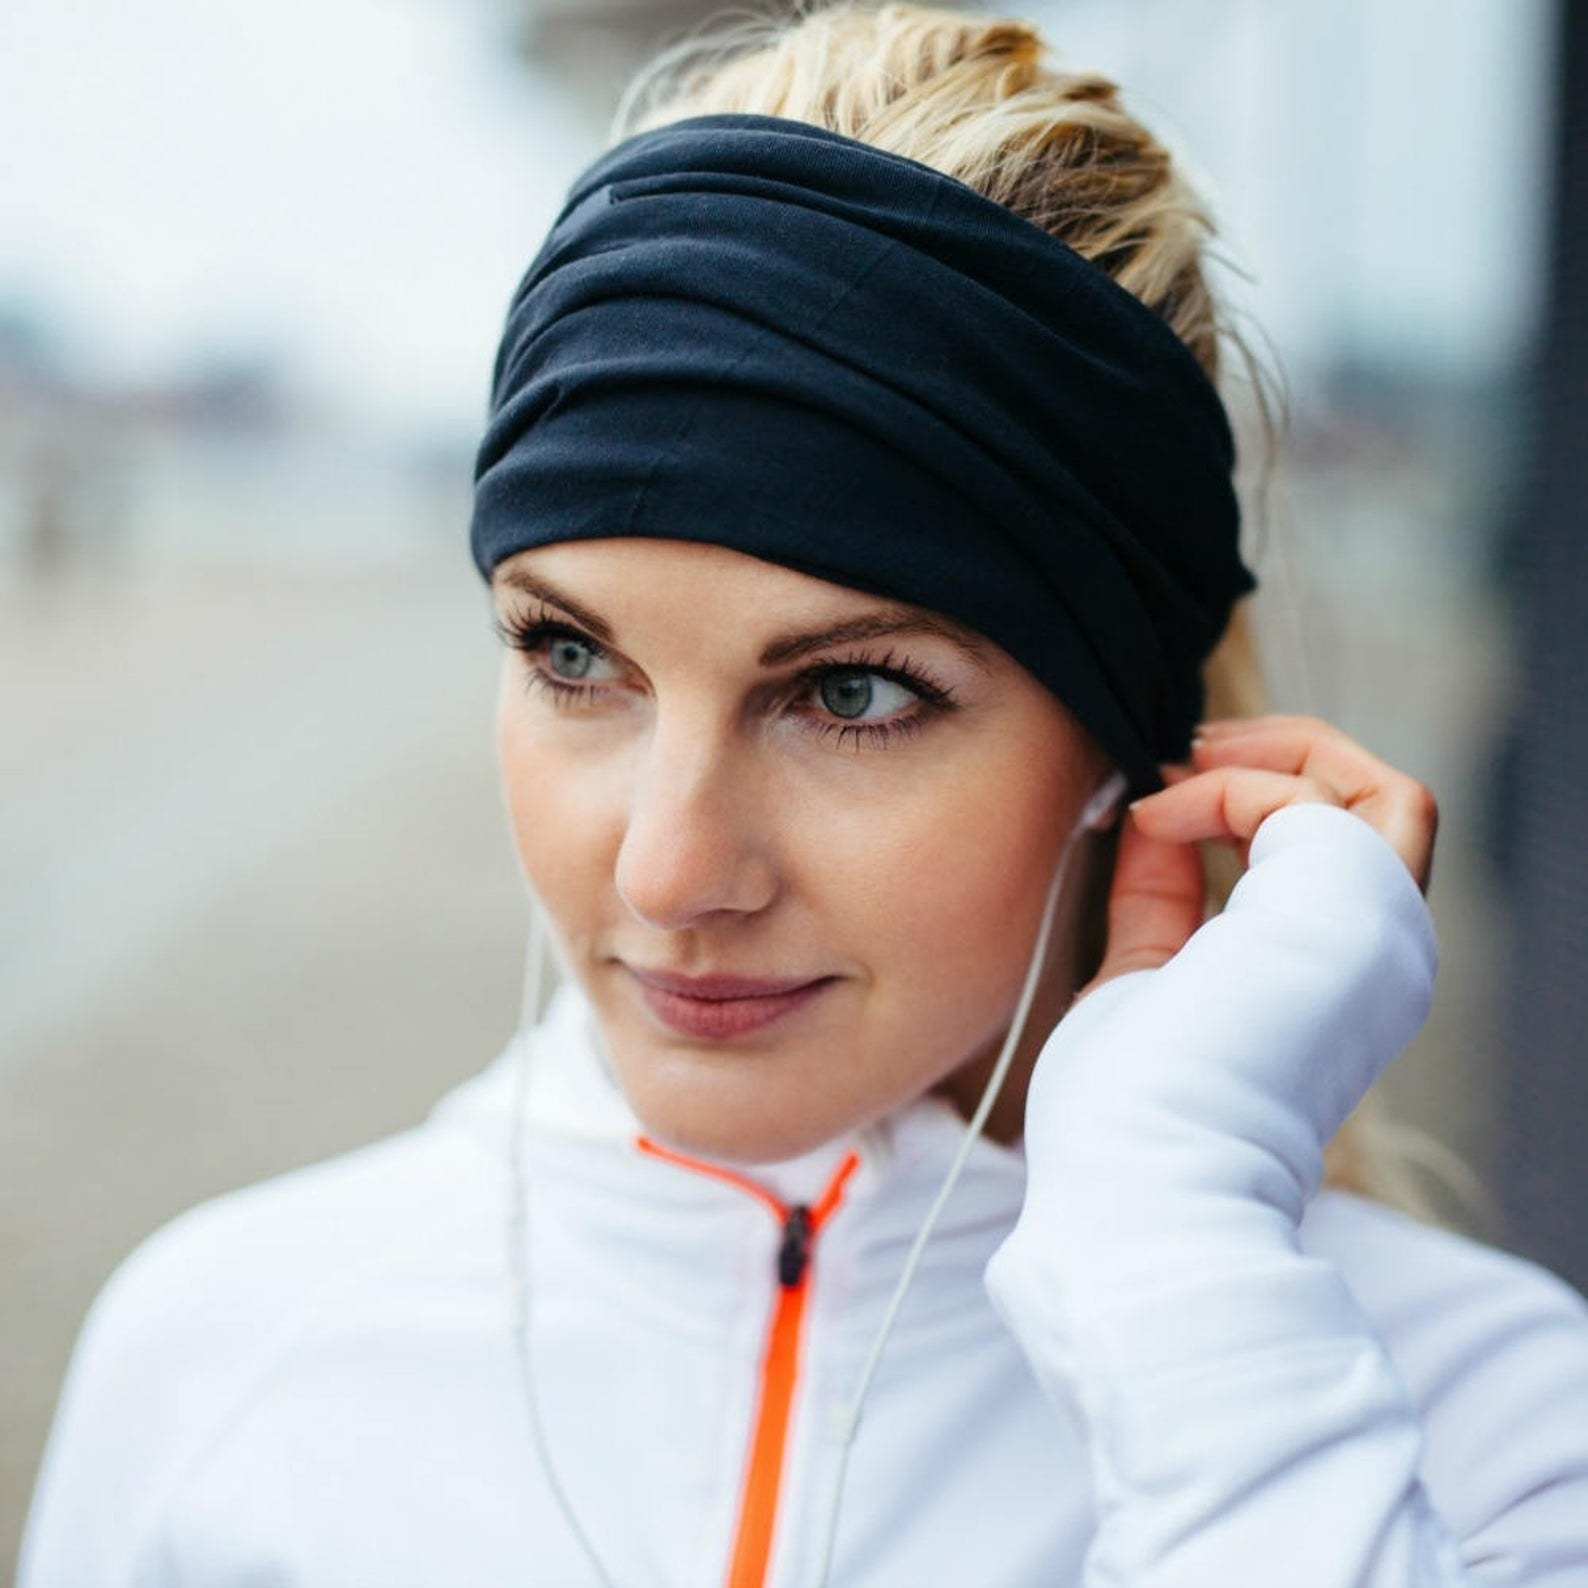 woman with headband on putting an earphone in her ear